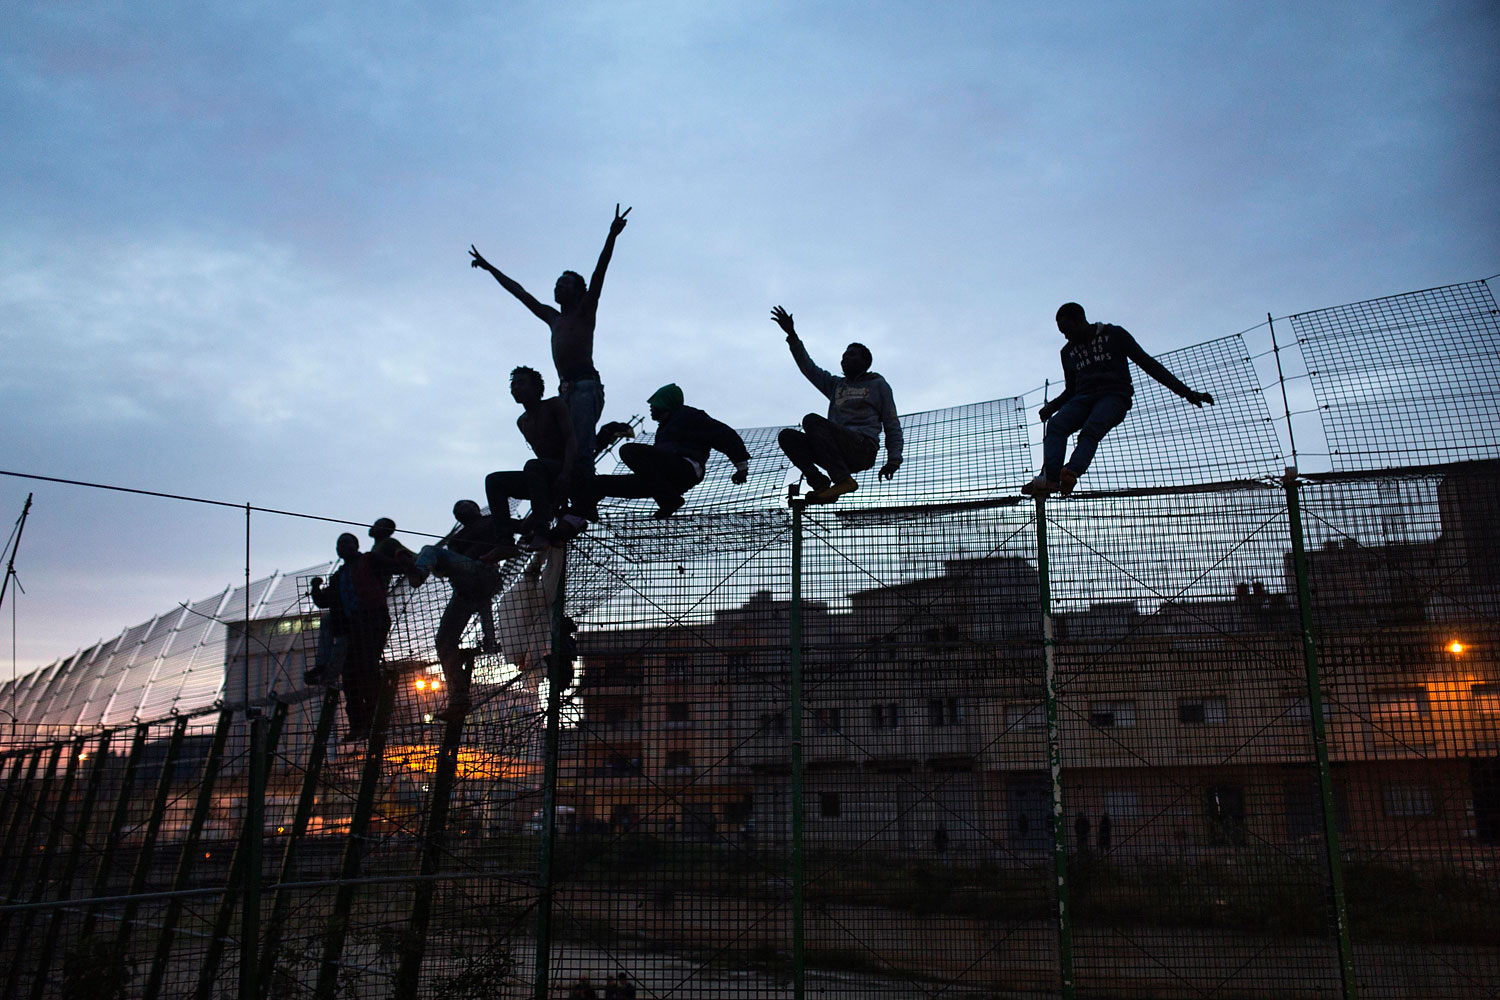 Sub-Saharan migrants climb over a metallic fence that divides Morocco and the Spanish enclave of Melilla, March 28, 2014. Thousands of migrants seeking a better life in Europe are living illegally in Morocco, hoping they can enter Melilla.